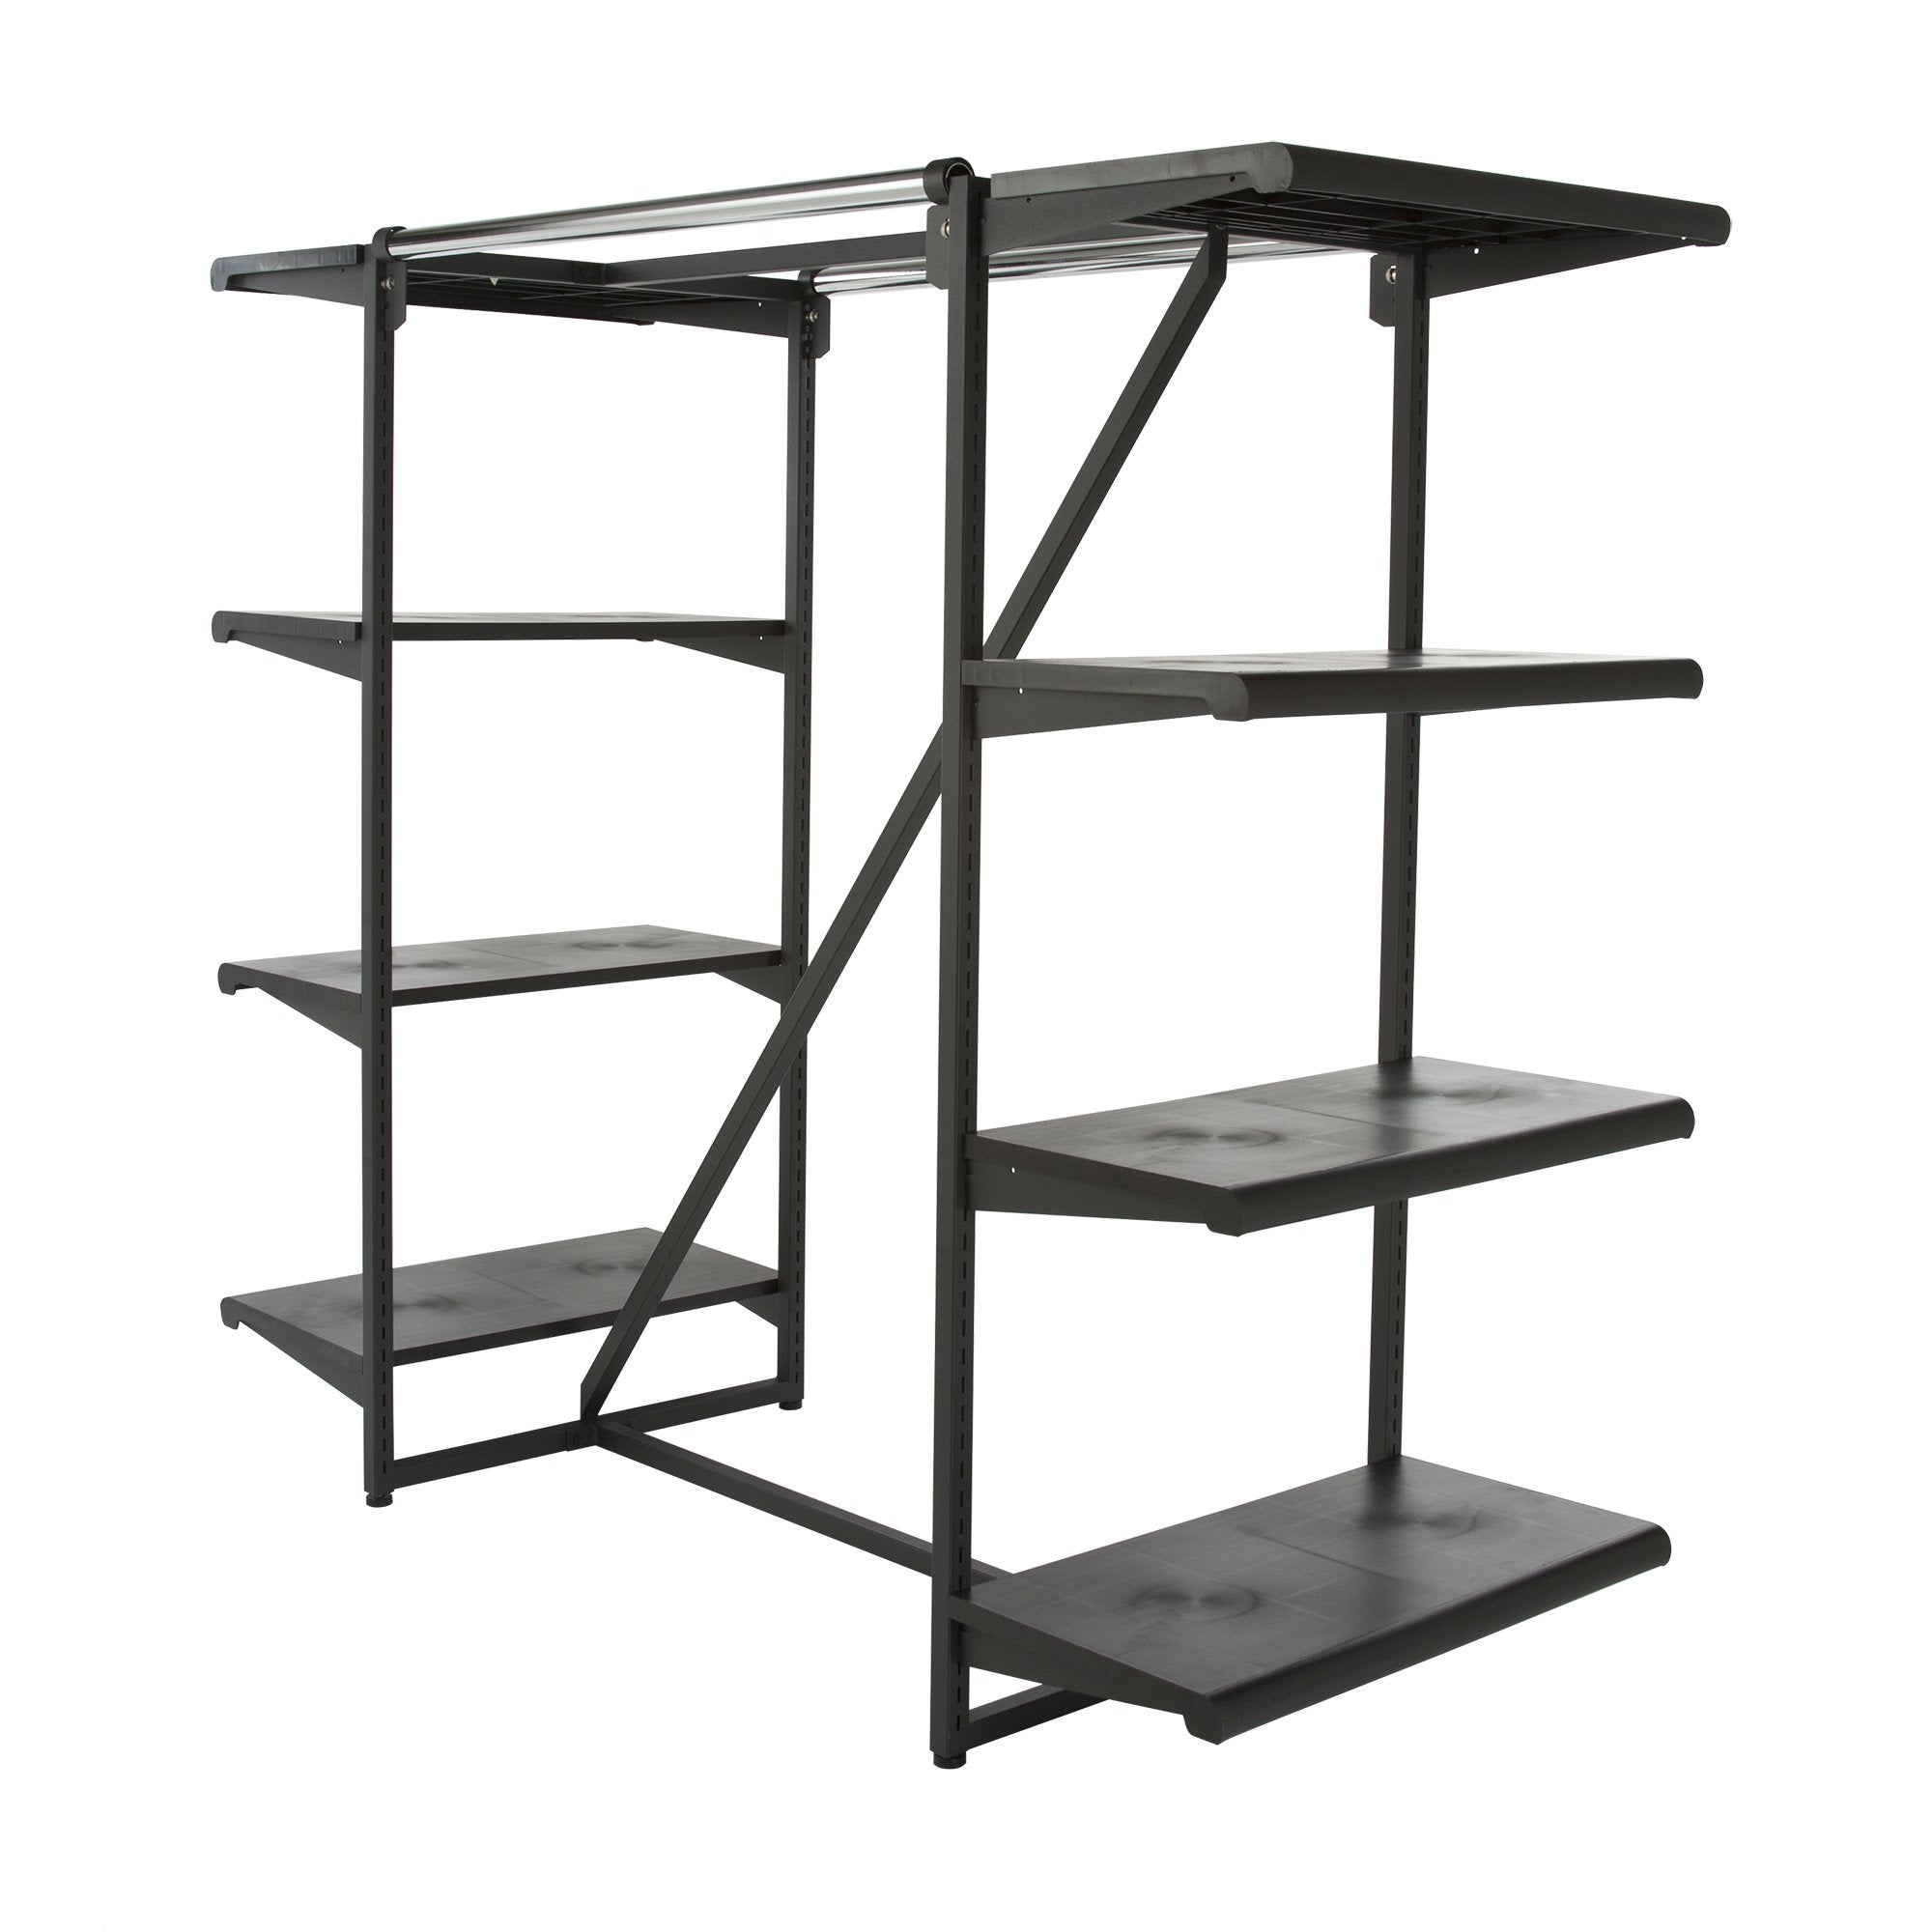 "Rental Double Hangrail Frame Rack w/ 8-24"" Shelves; 1"" Square Tubing"